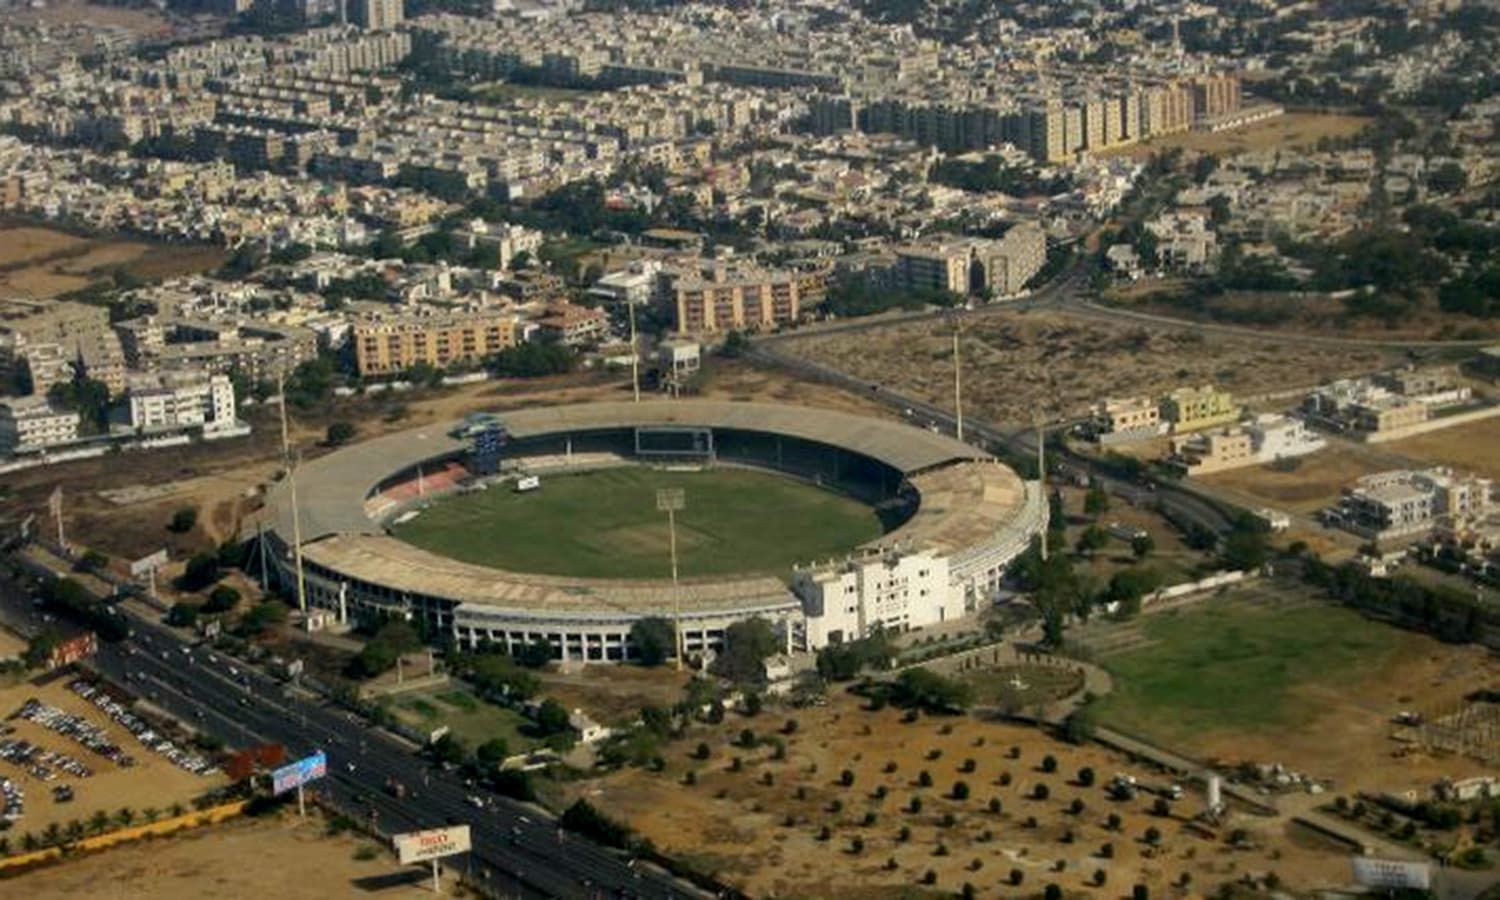 National Stadium of Karachi